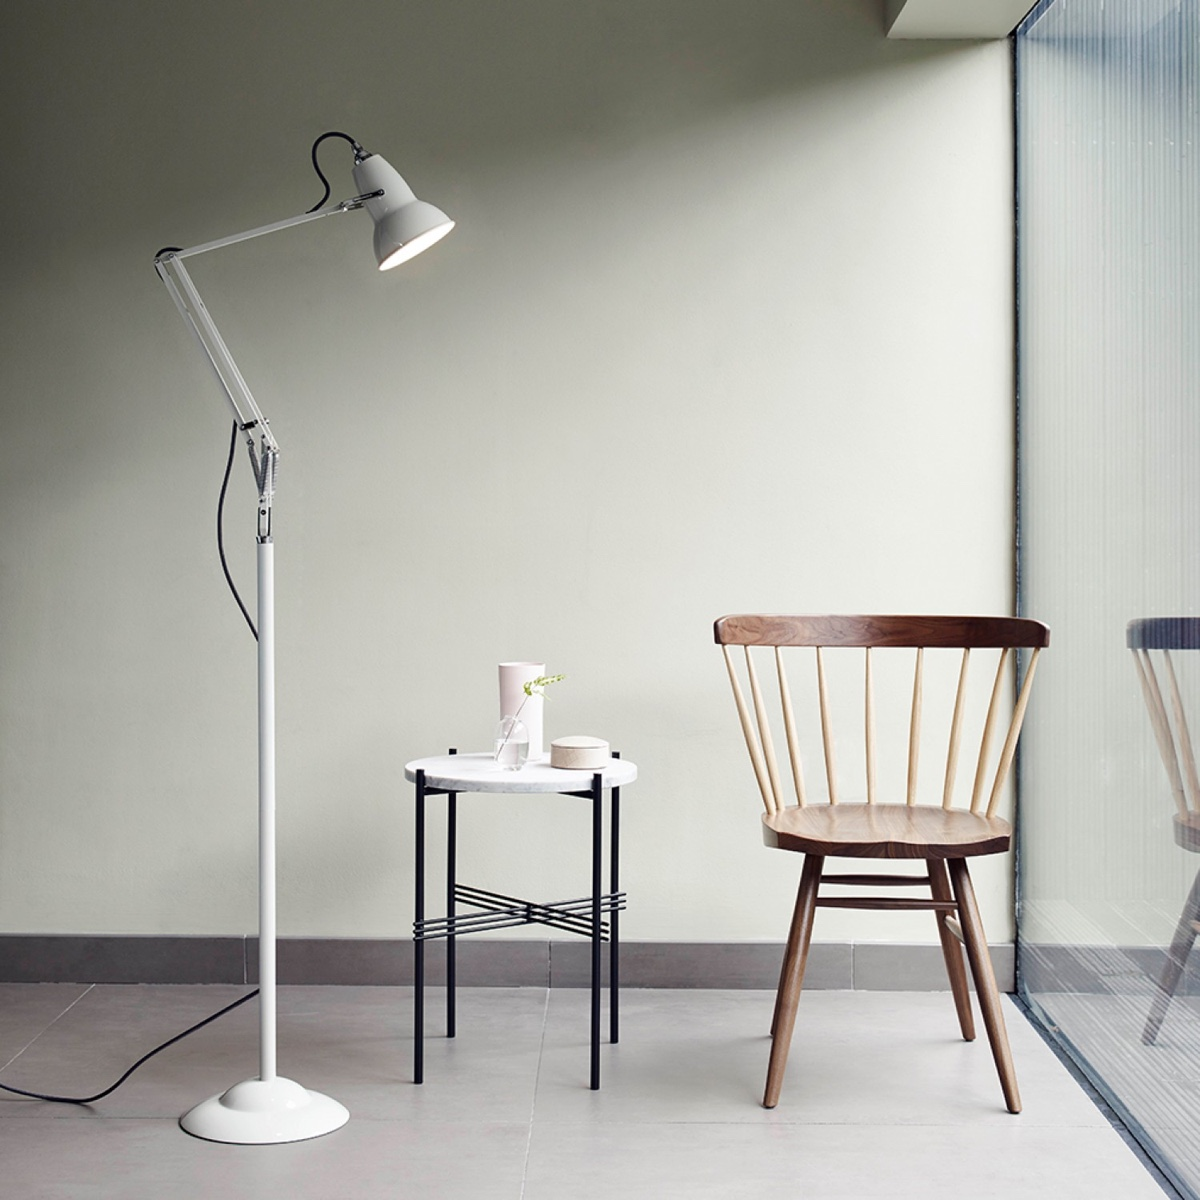 The Anglepoise Original 1227™ floor lamp. Image © 2016 Anglepoise.